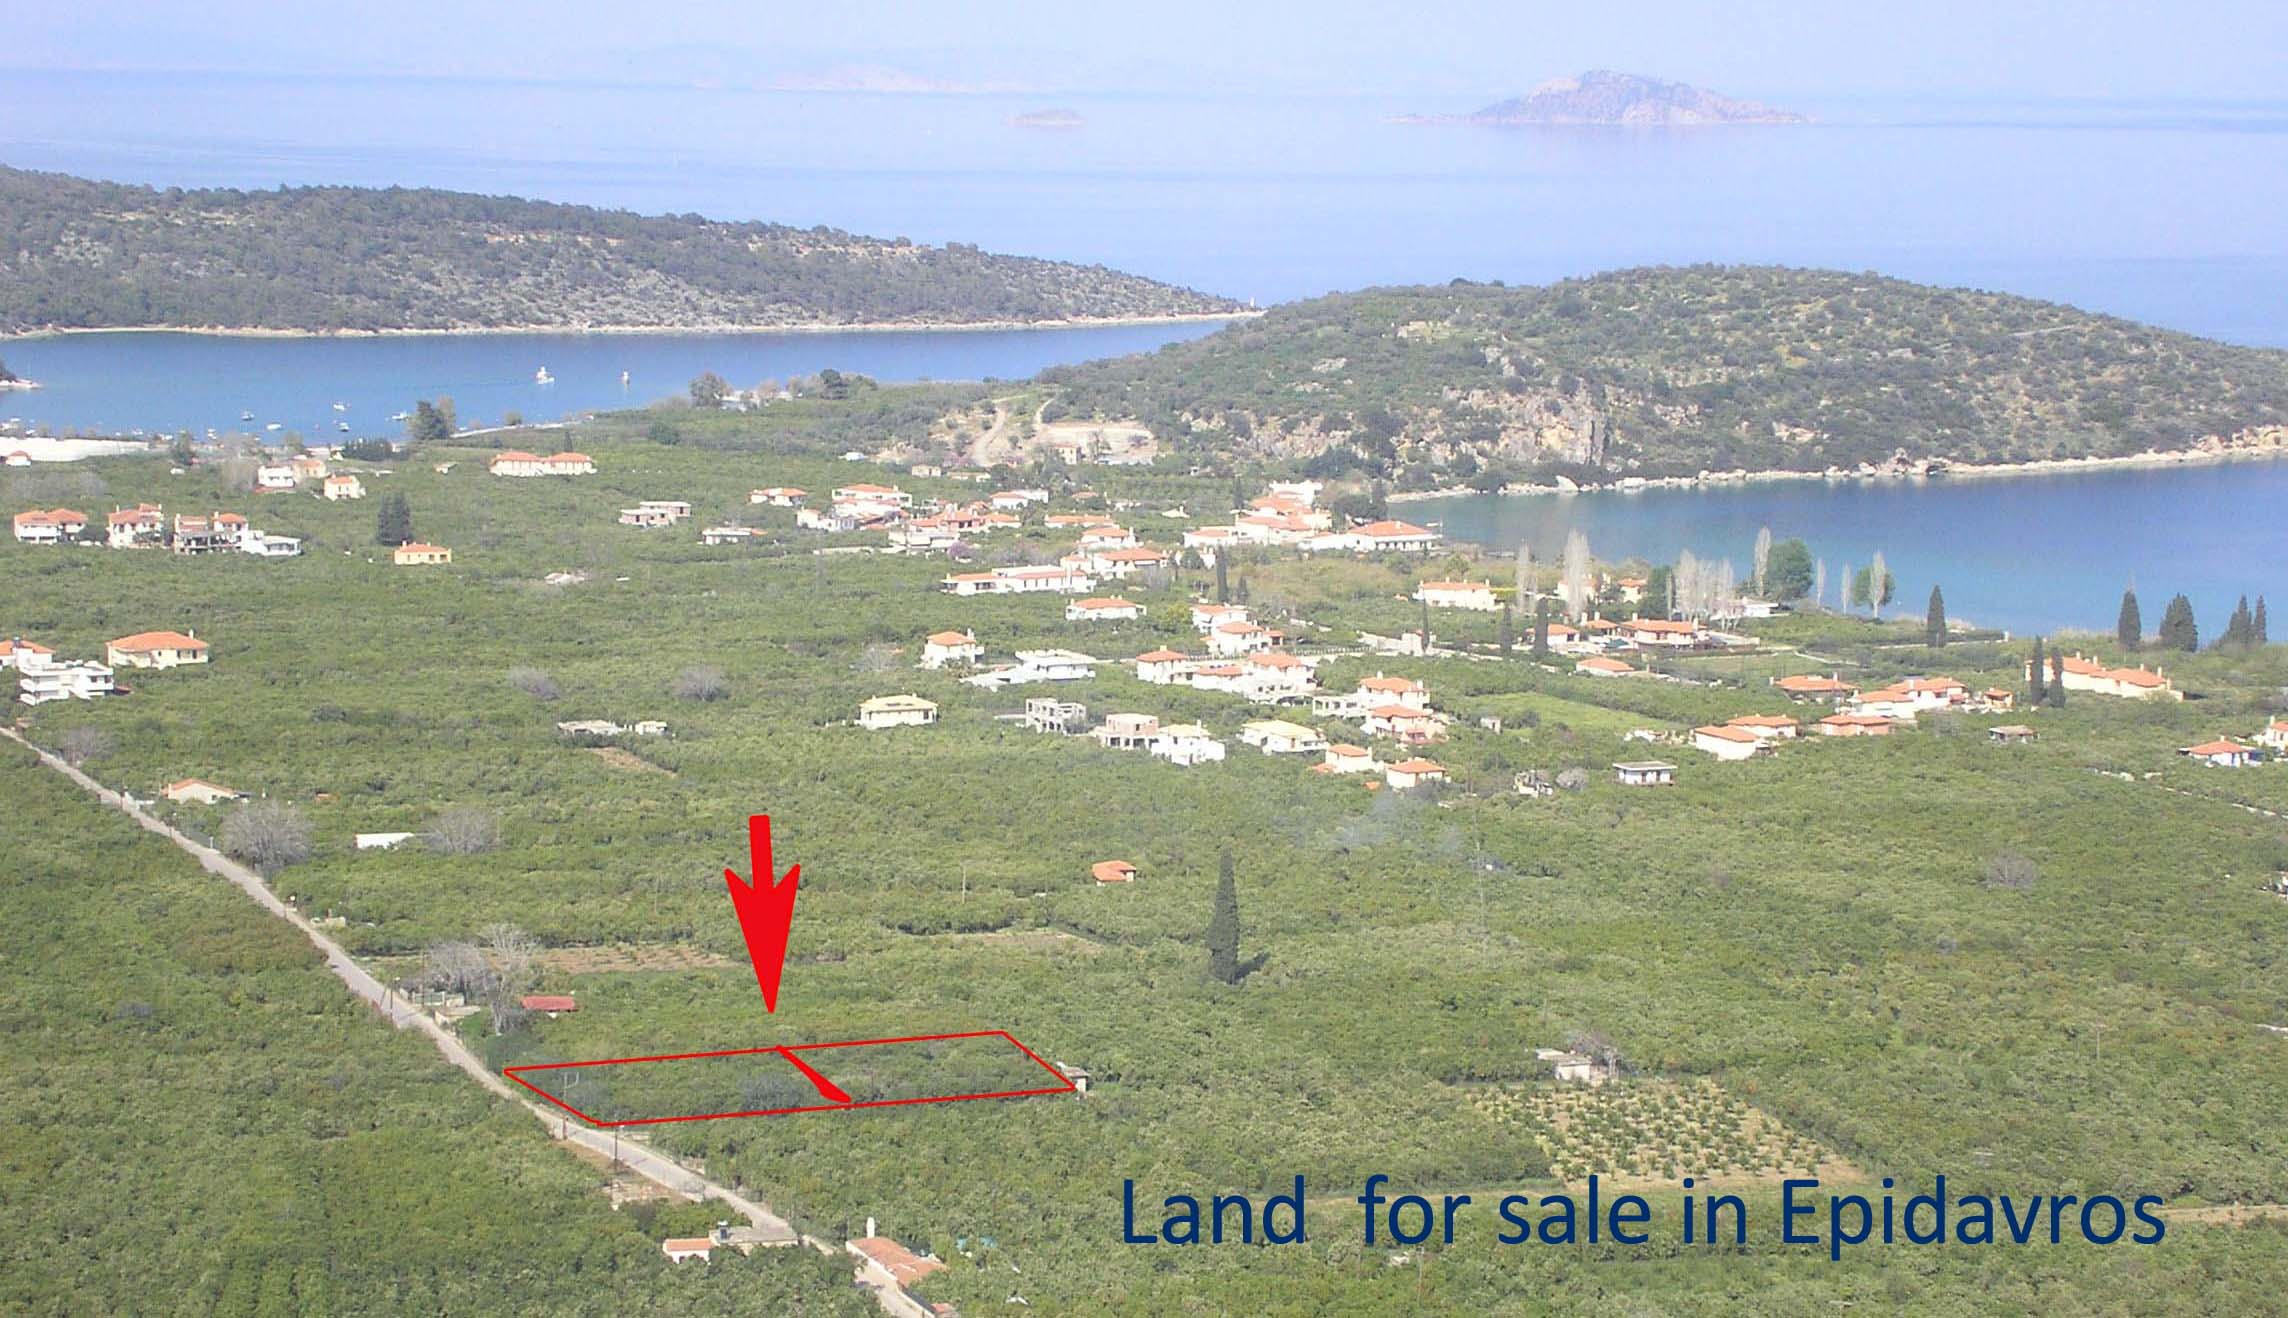 land for sale Epidavros